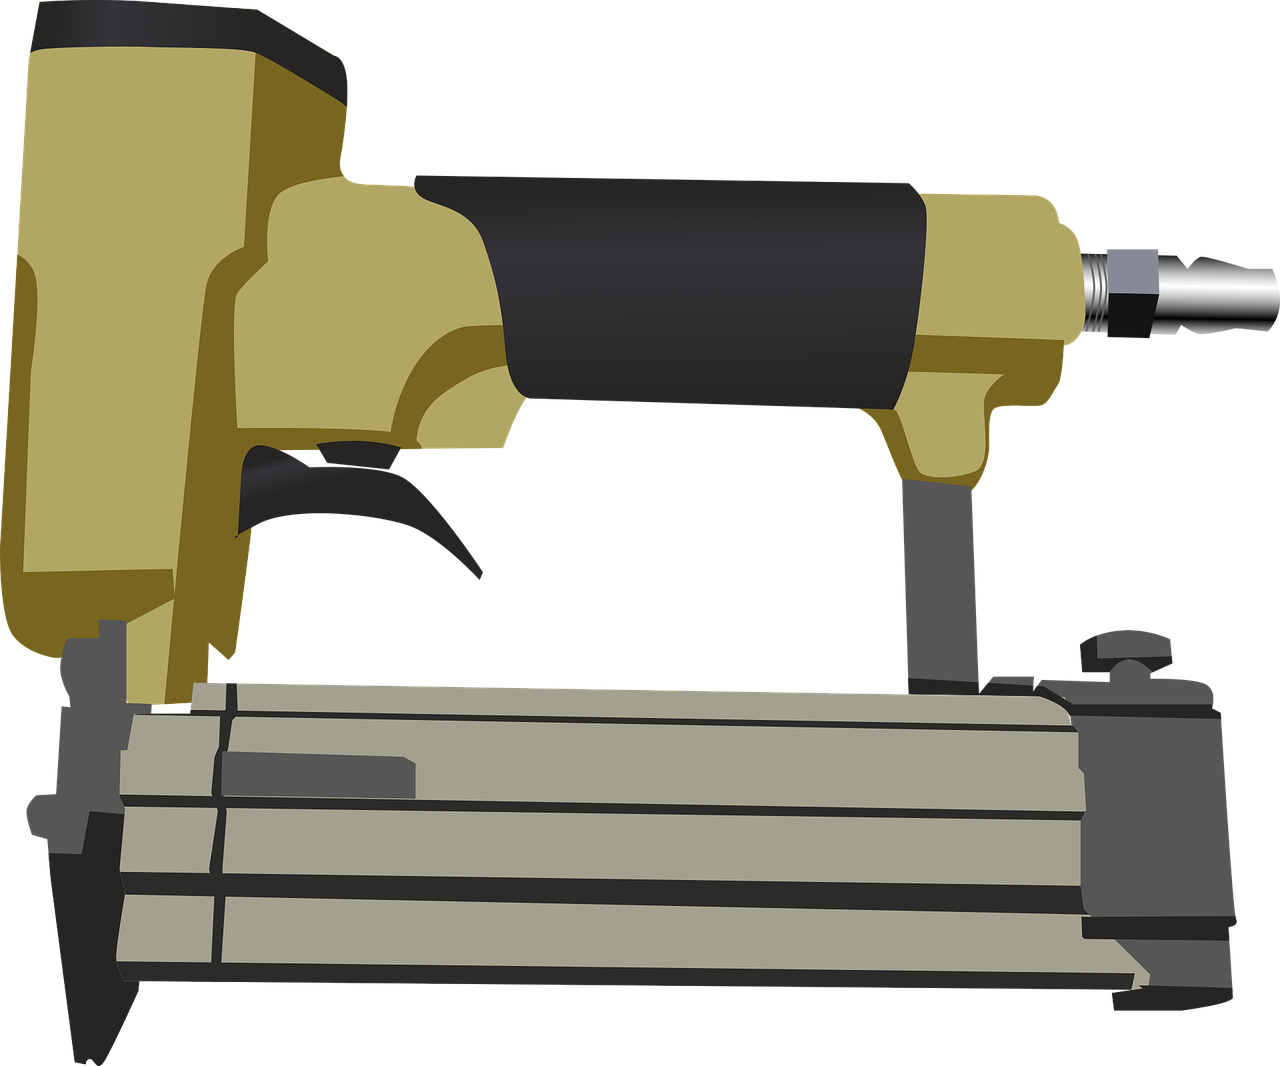 Clipart hammer roofing tool. Top benefits of using